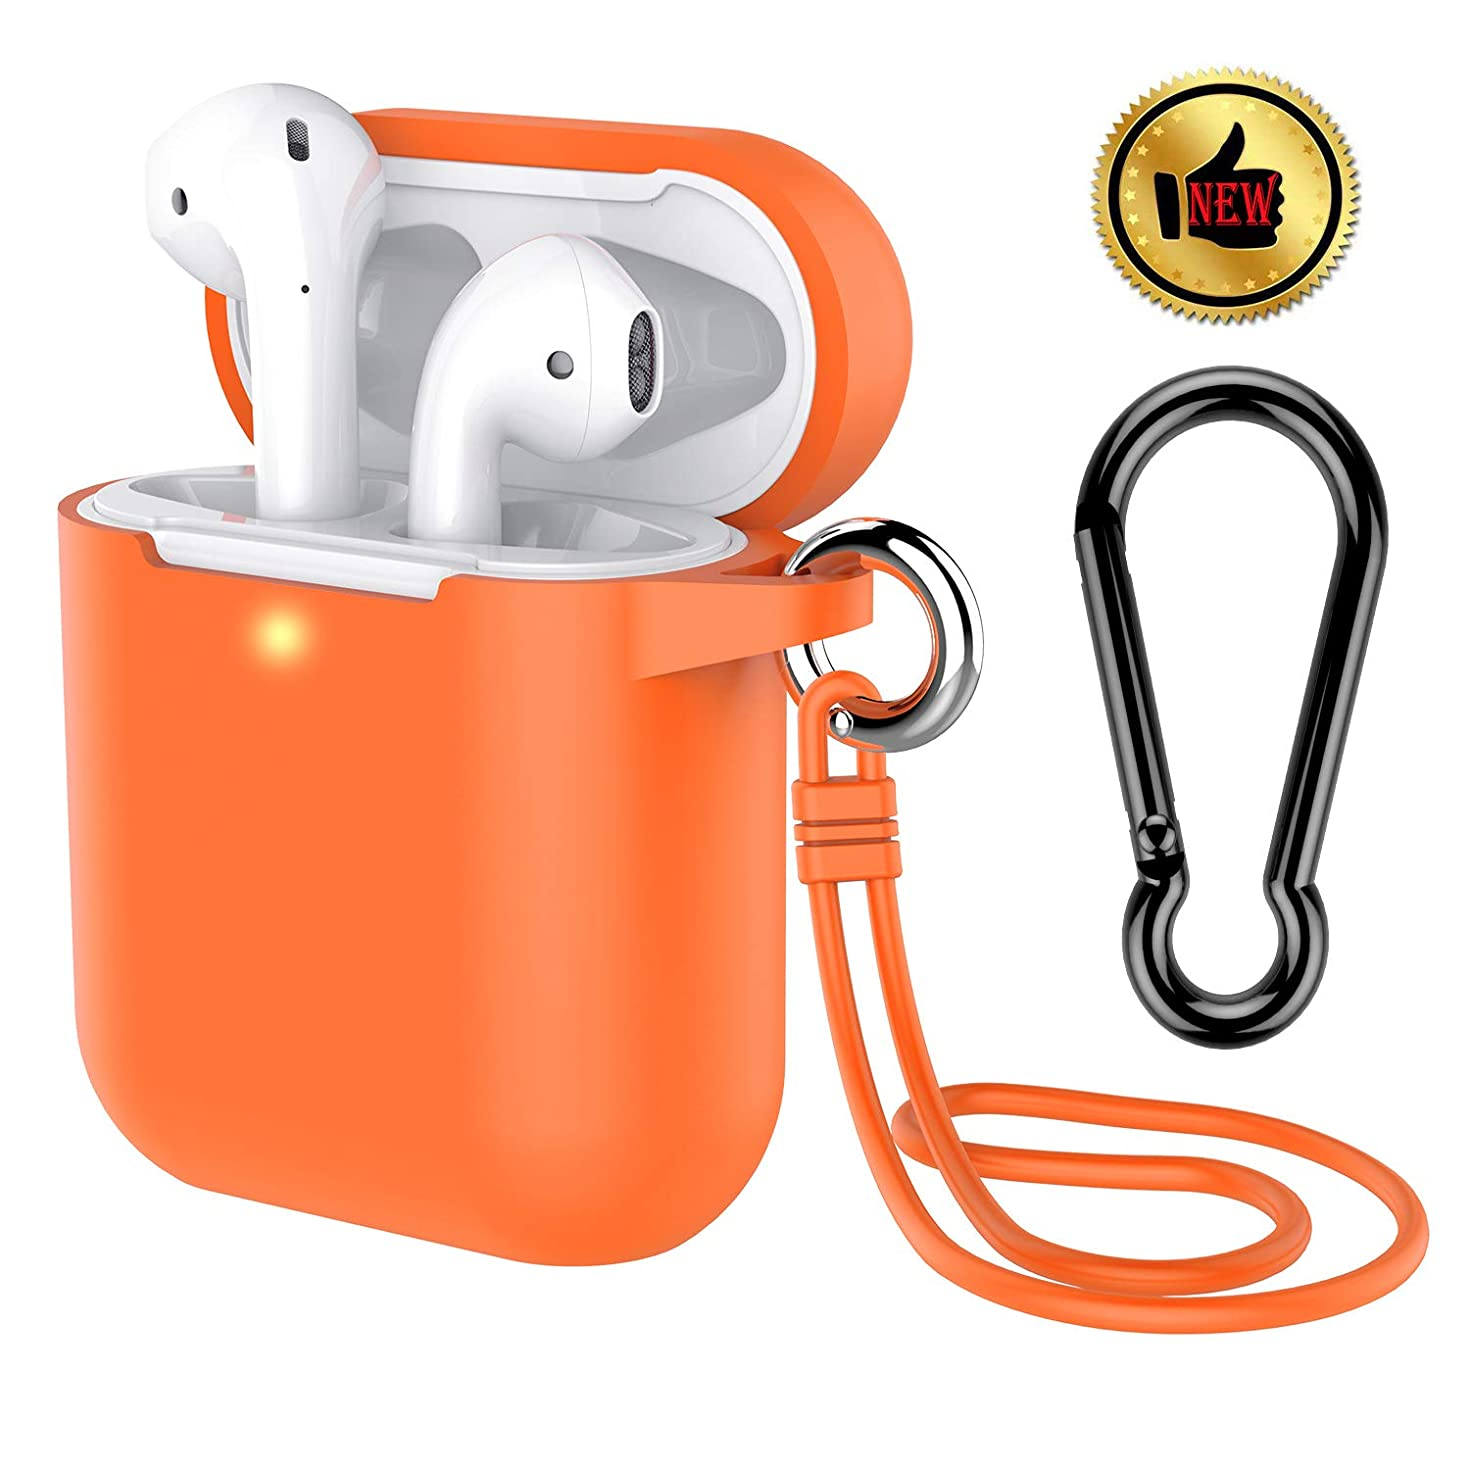 AirPods Case, Coffea Protective Silicone Cover Skin with Keychain/Stap for Apple AirPods 2 Wireless Charging Case [Front LED Visible] (Vibrant Orange)